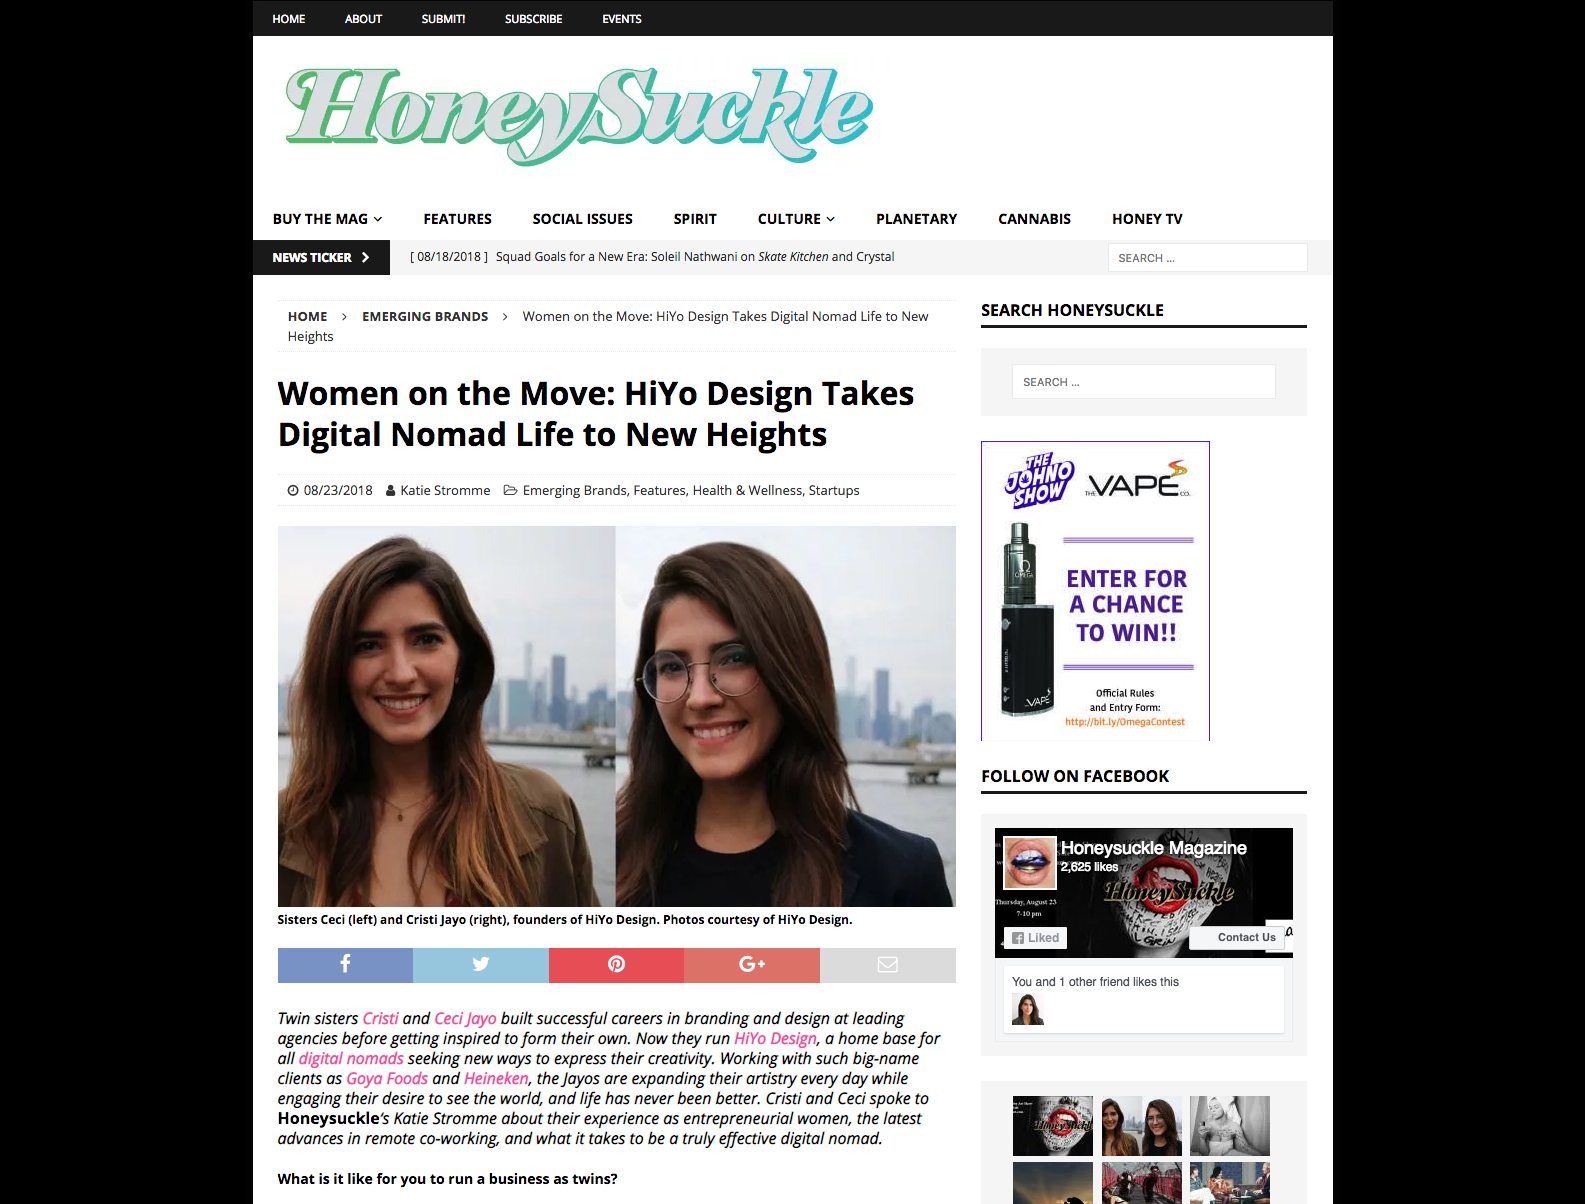 Honeysuckle Magazine  - Twin sisters Cristi and Ceci Jayo run   HIYO Design  , a home base for all digital nomads seeking new ways to express their creativity.